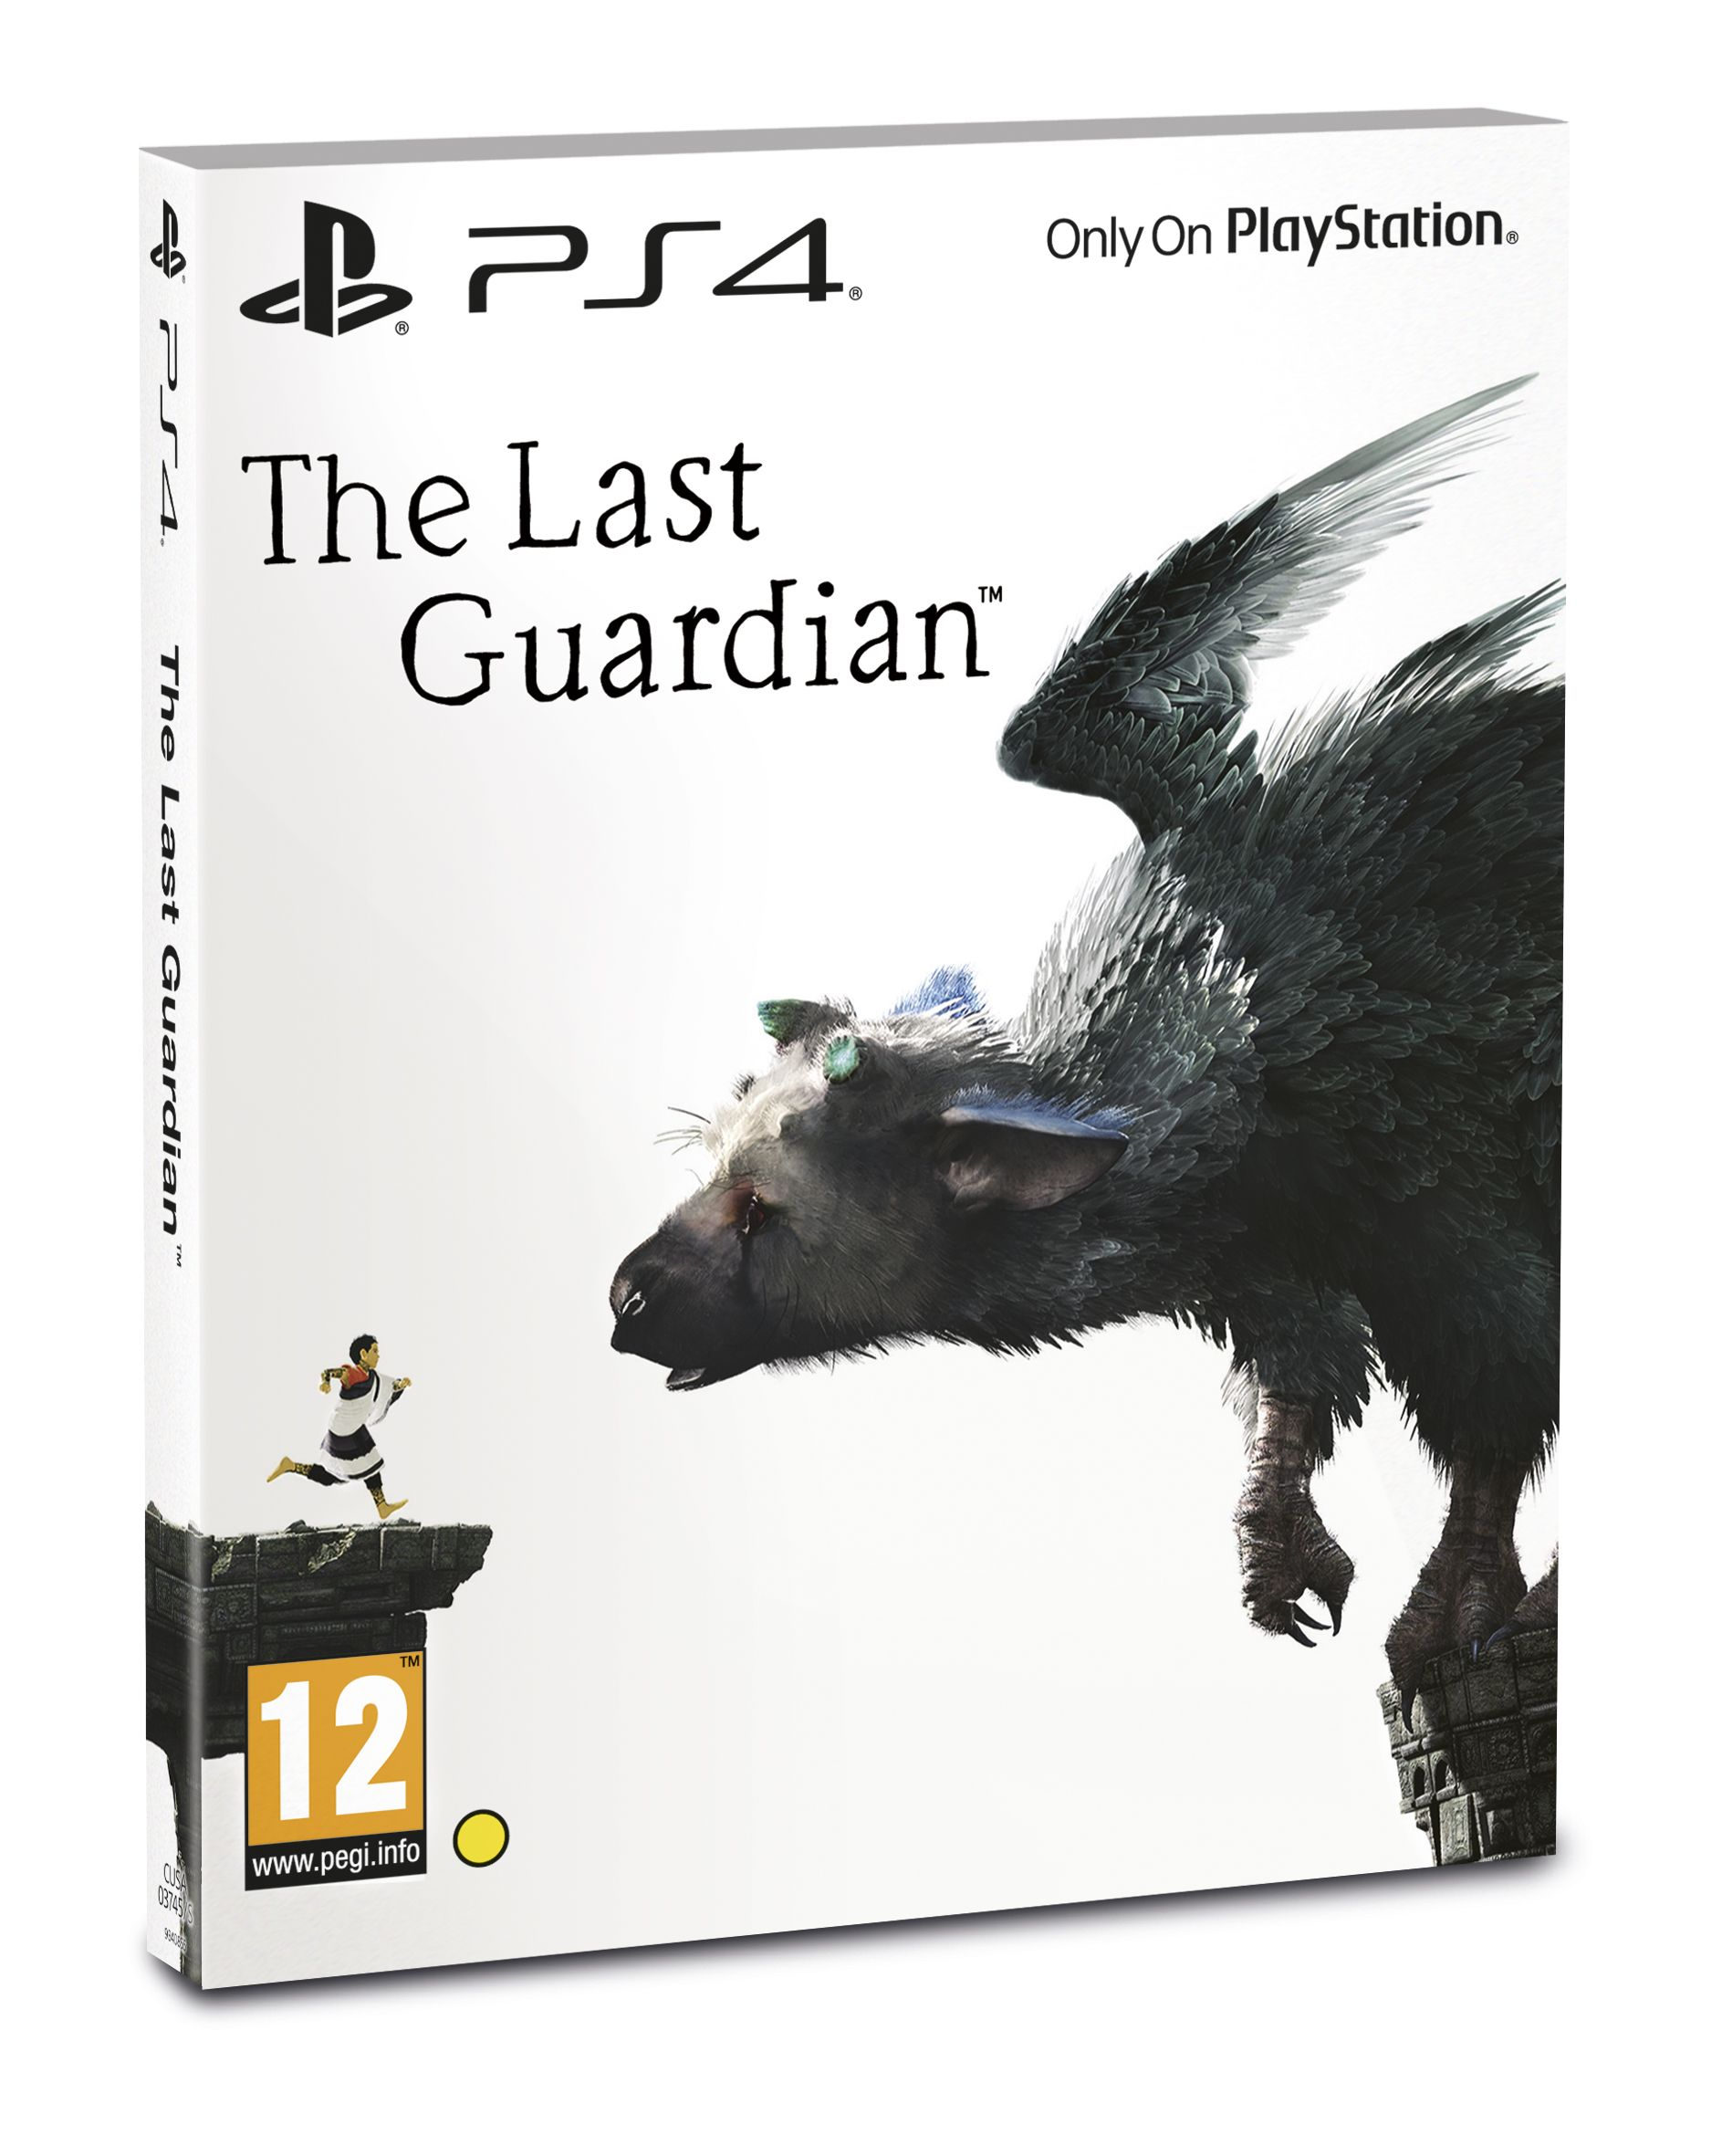 The Last Guardian Limited Edition (PS4) - 4